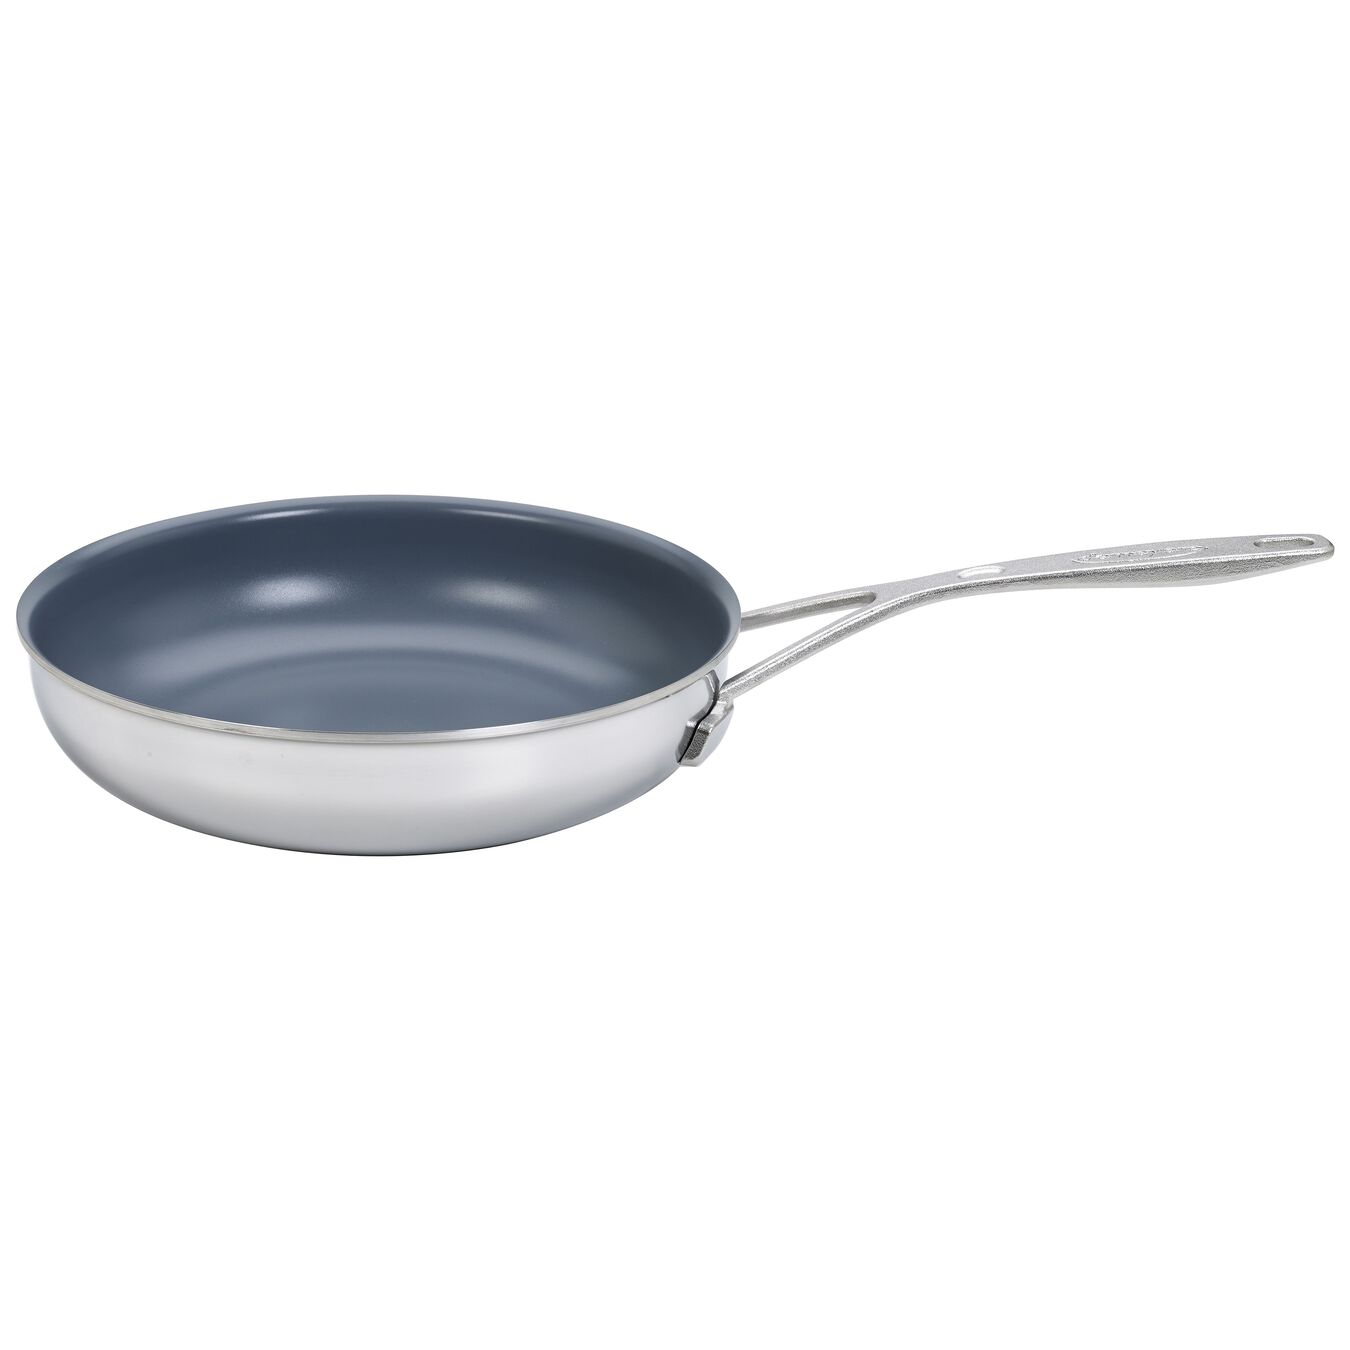 8-inch Stainless Steel Ceramic Nonstick Fry Pan,,large 1